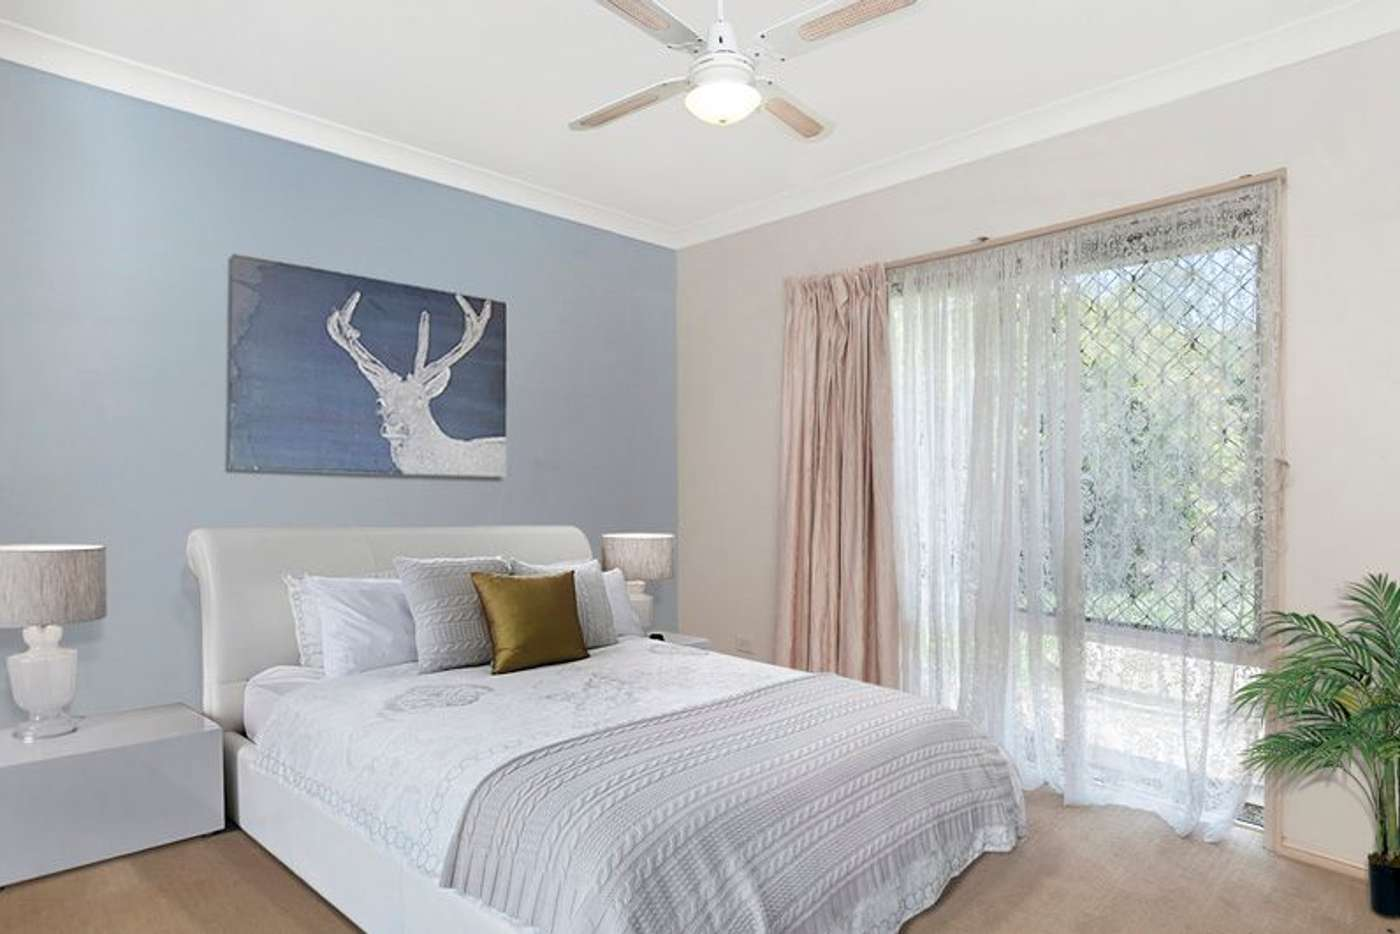 Seventh view of Homely house listing, 16-20 Marjorie Court, Jimboomba QLD 4280